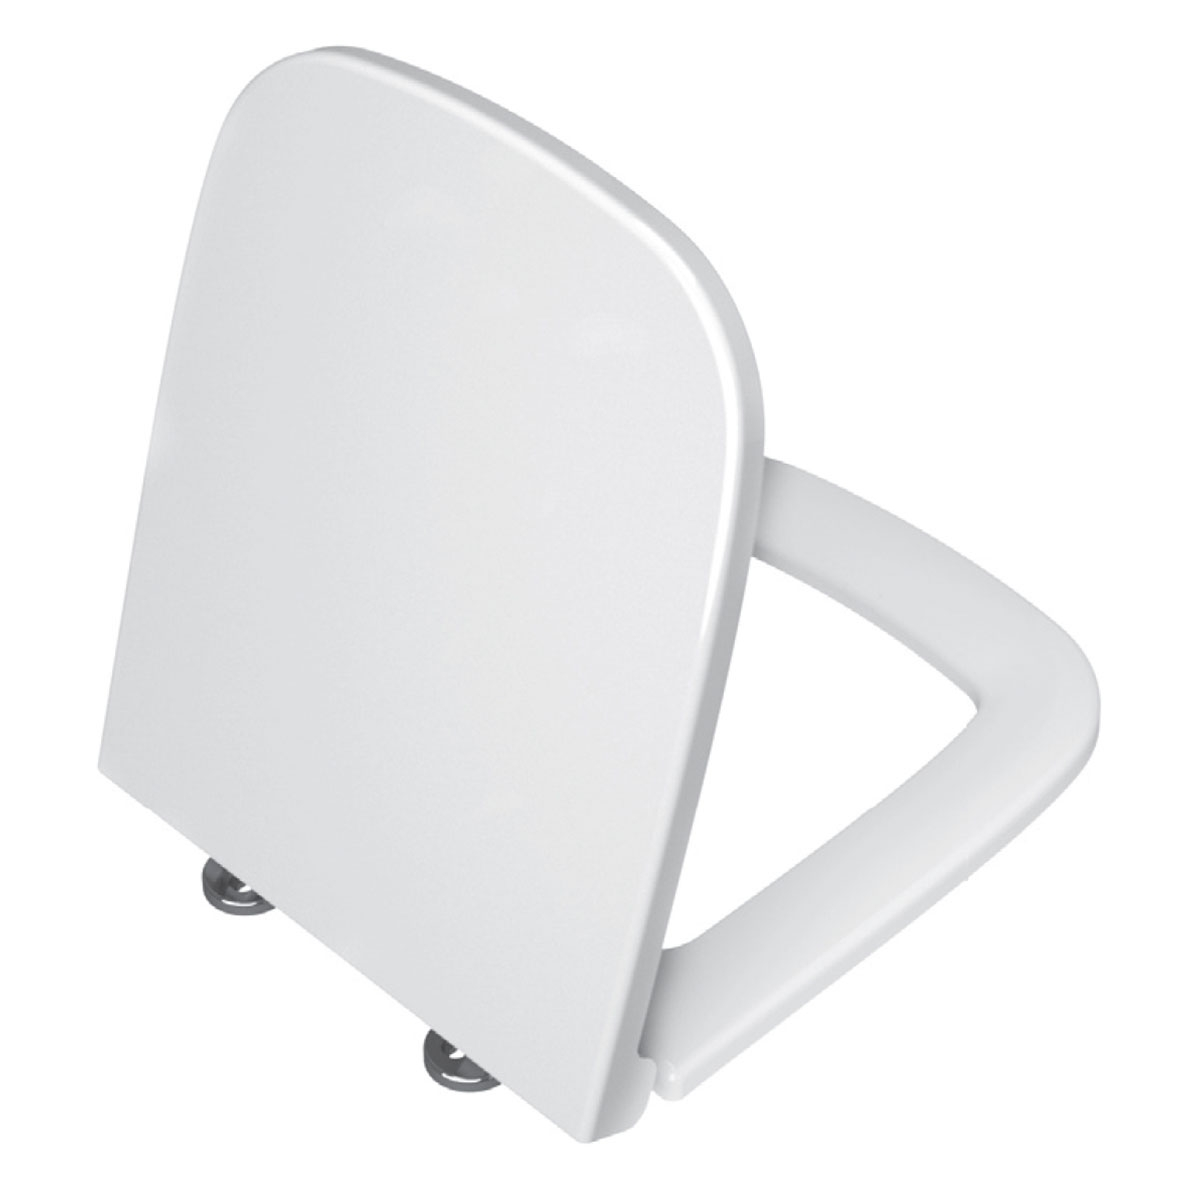 VitrA S20 Cloakroom Suite Toilet and 450mm 1 Tap Hole Basin - Soft Close Seat-1